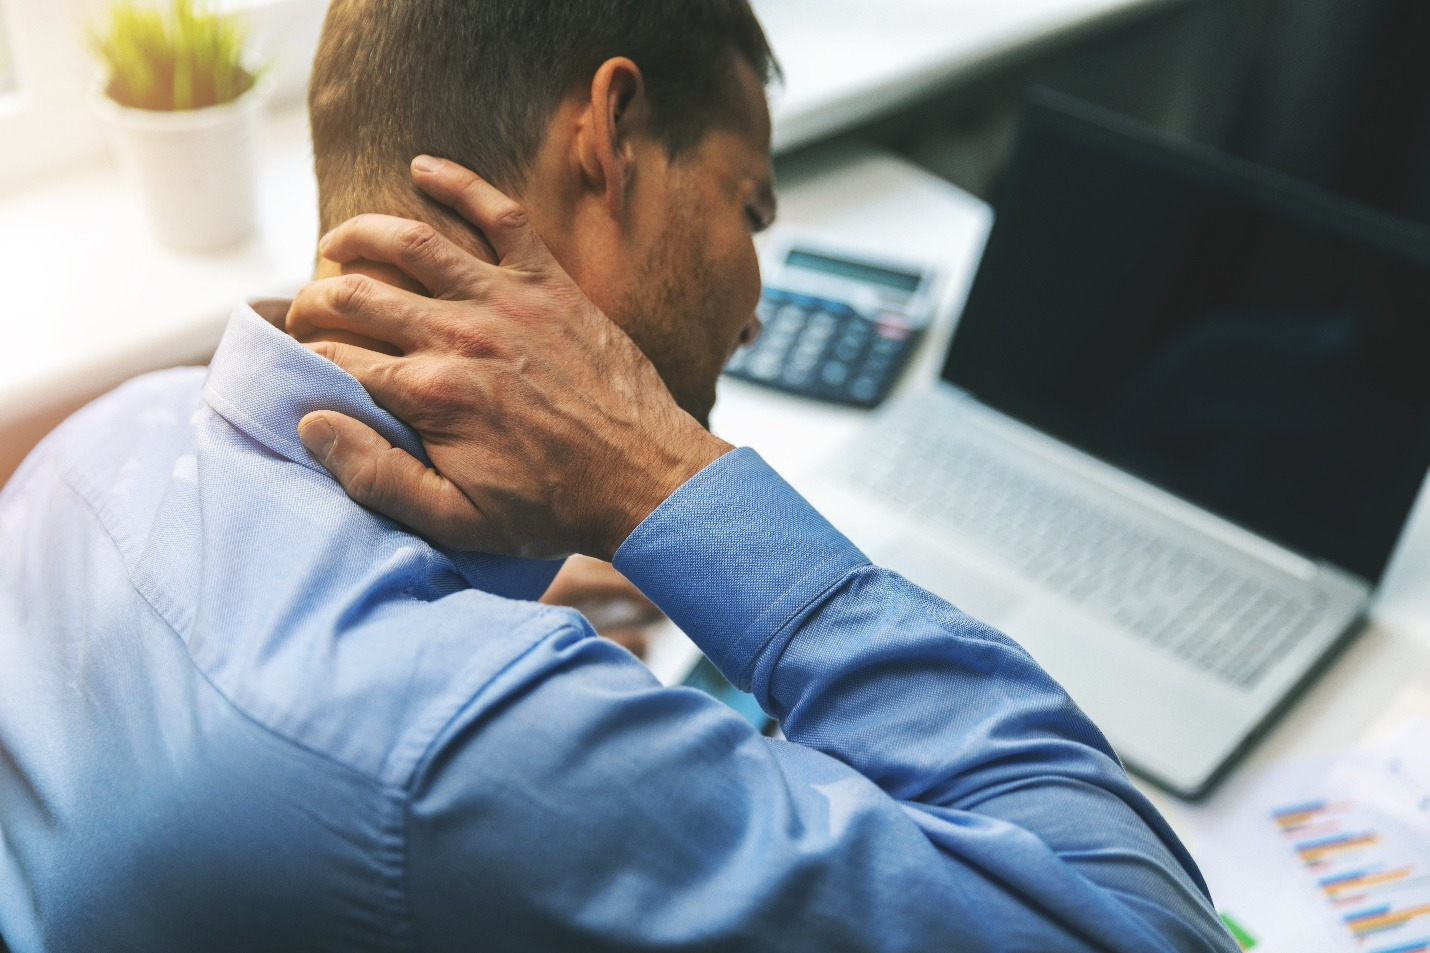 man suffering from neck and back pain while working with computer